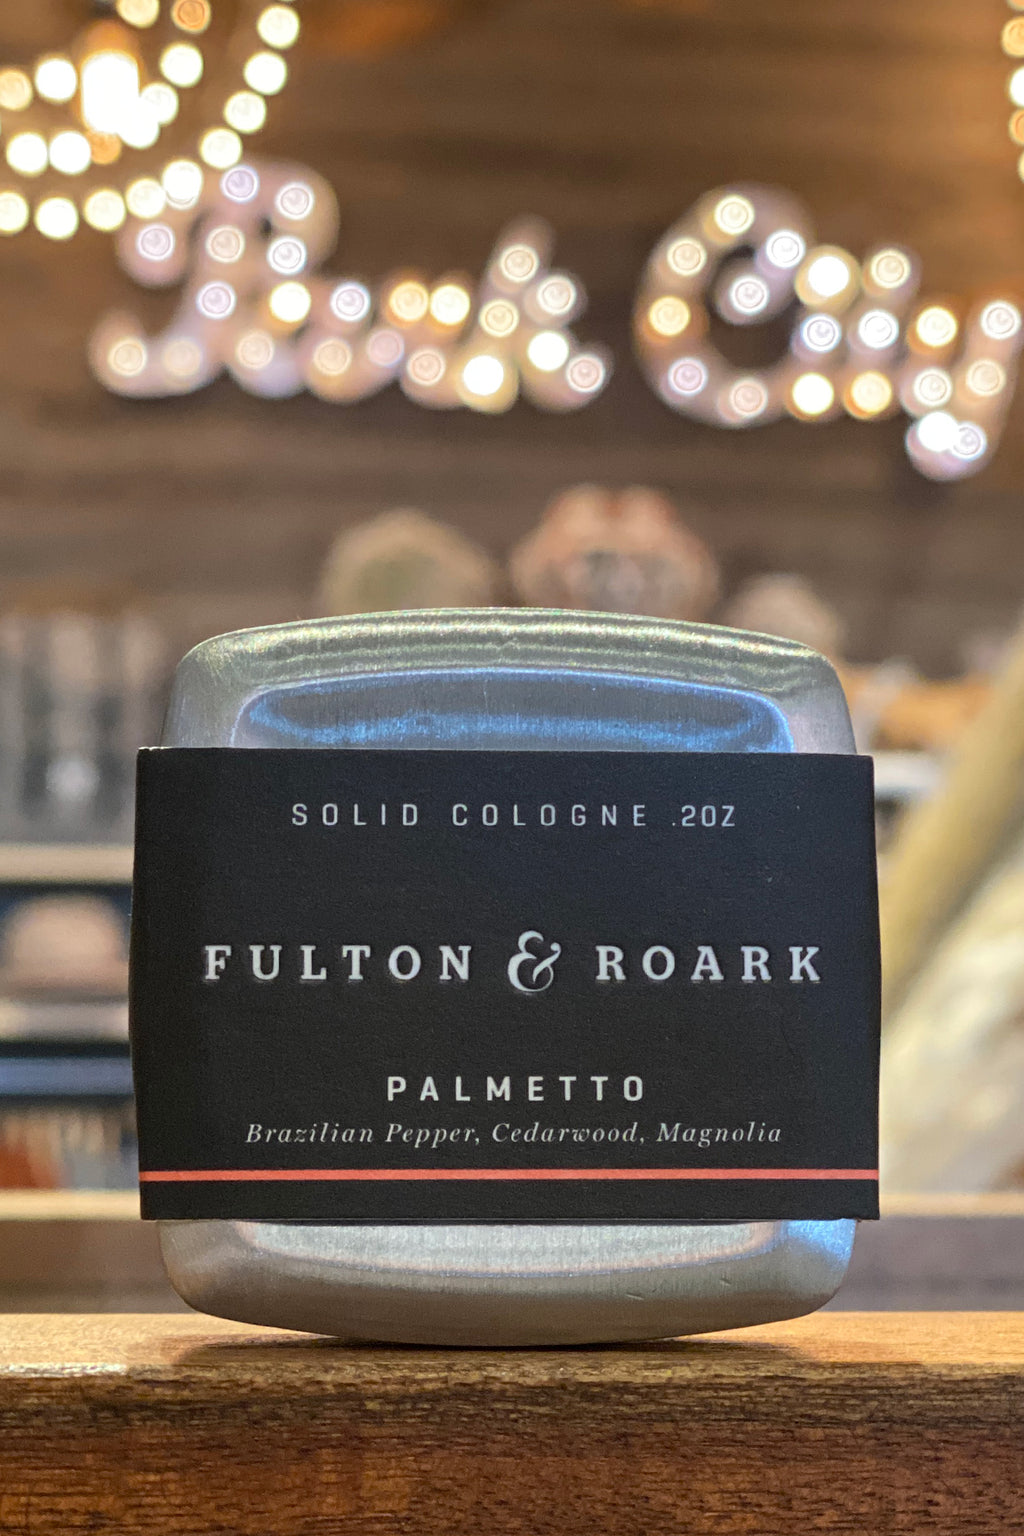 Artisanal Solid Cologne